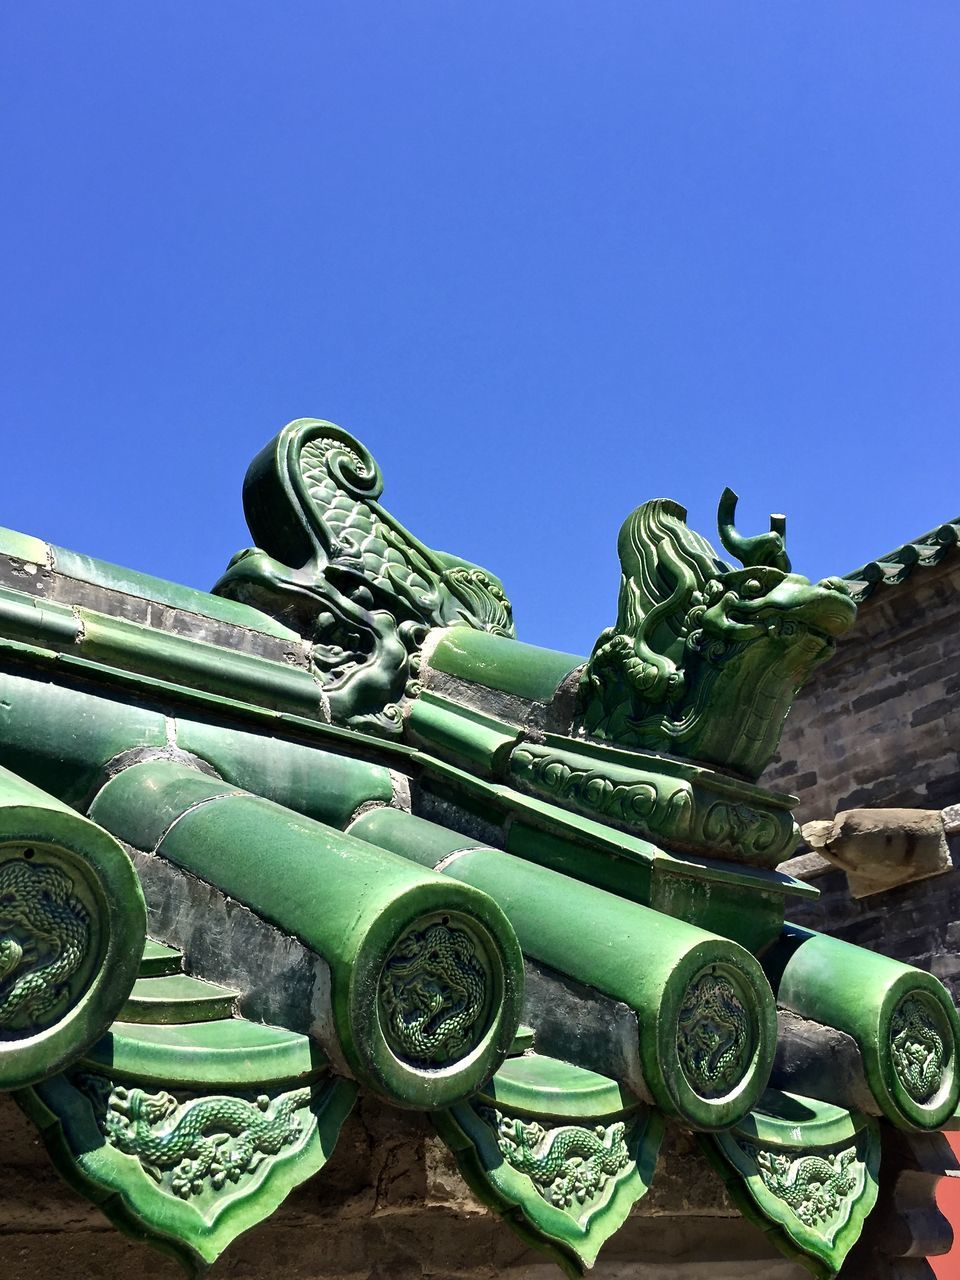 low angle view, day, blue, history, outdoors, no people, clear sky, weapon, sculpture, statue, architecture, close-up, sky